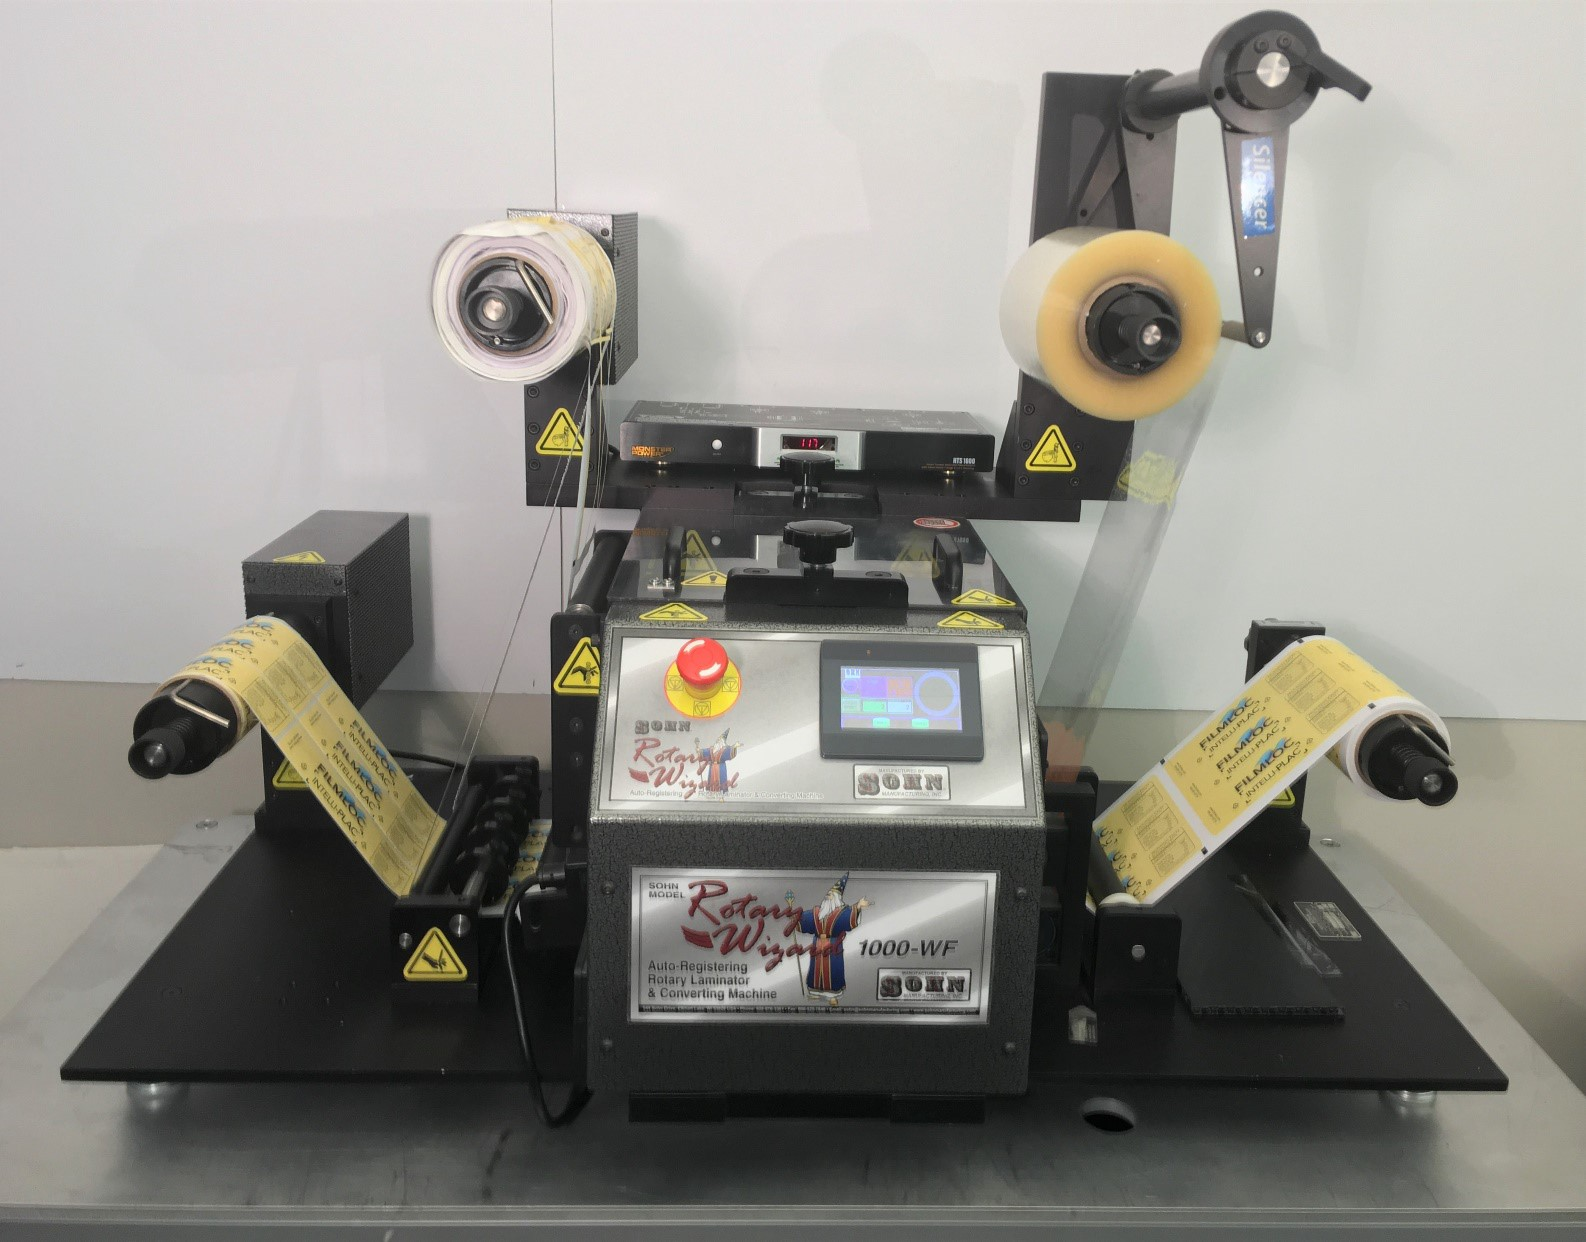 Sohn Rotary Wizard 1000-WF - Used Flexo Printing Presses and Used Flexographic Equipment-0